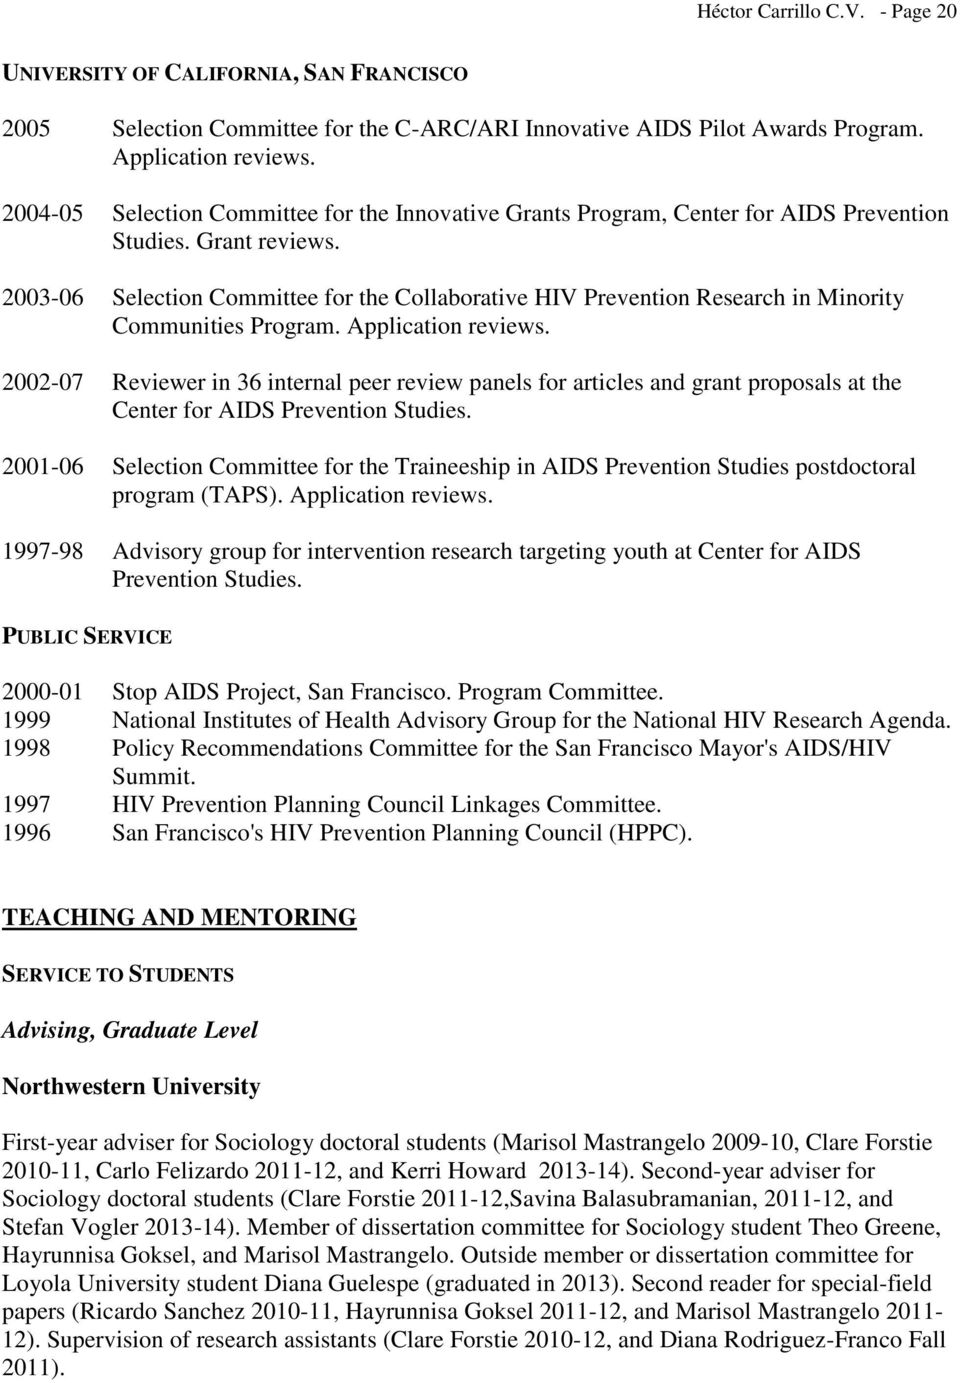 2003-06 Selection Committee for the Collaborative HIV Prevention Research in Minority Communities Program. Application reviews.